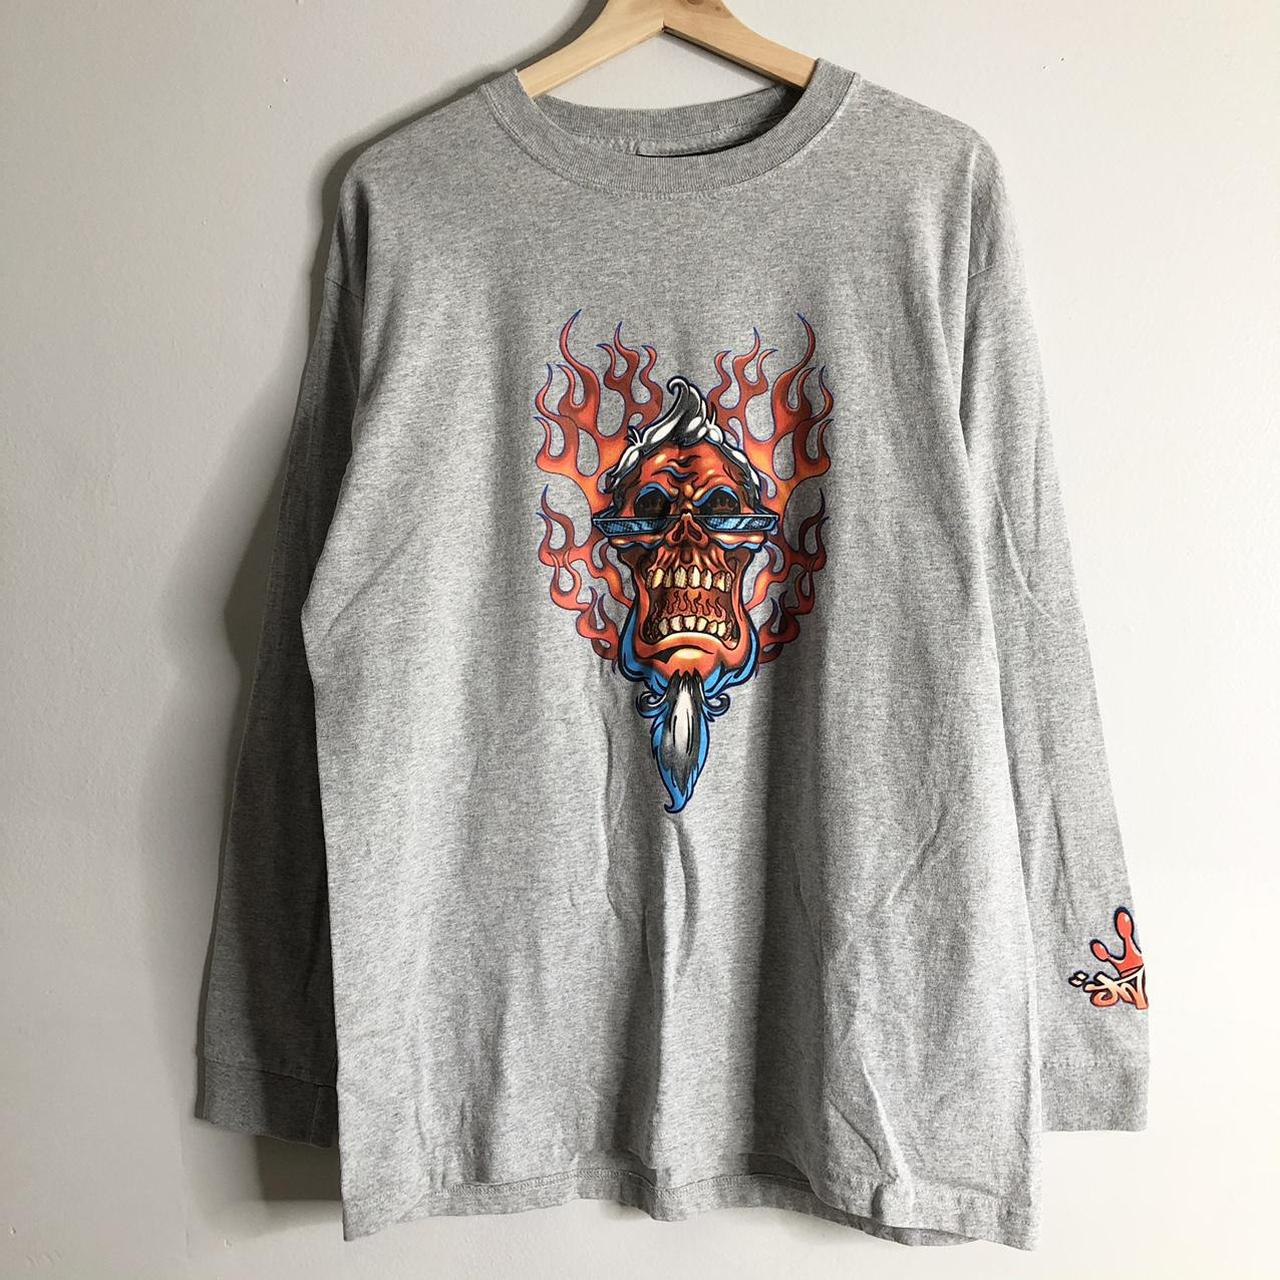 Product Image 1 - Vintage JNCO Jeans Long Sleeve